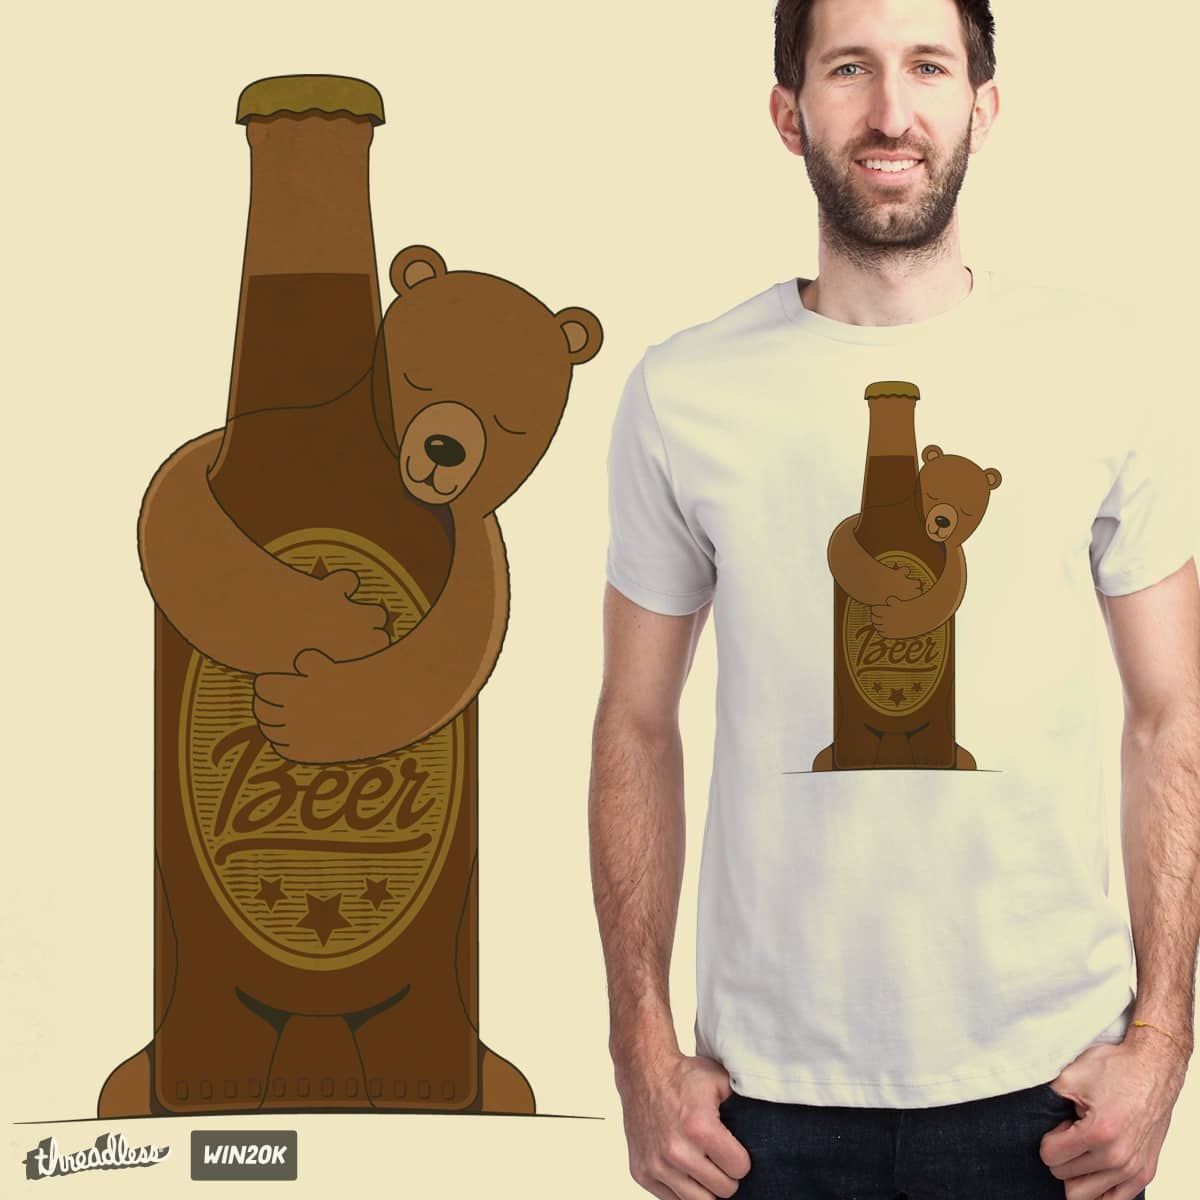 BEER HUG by emeryg on Threadless